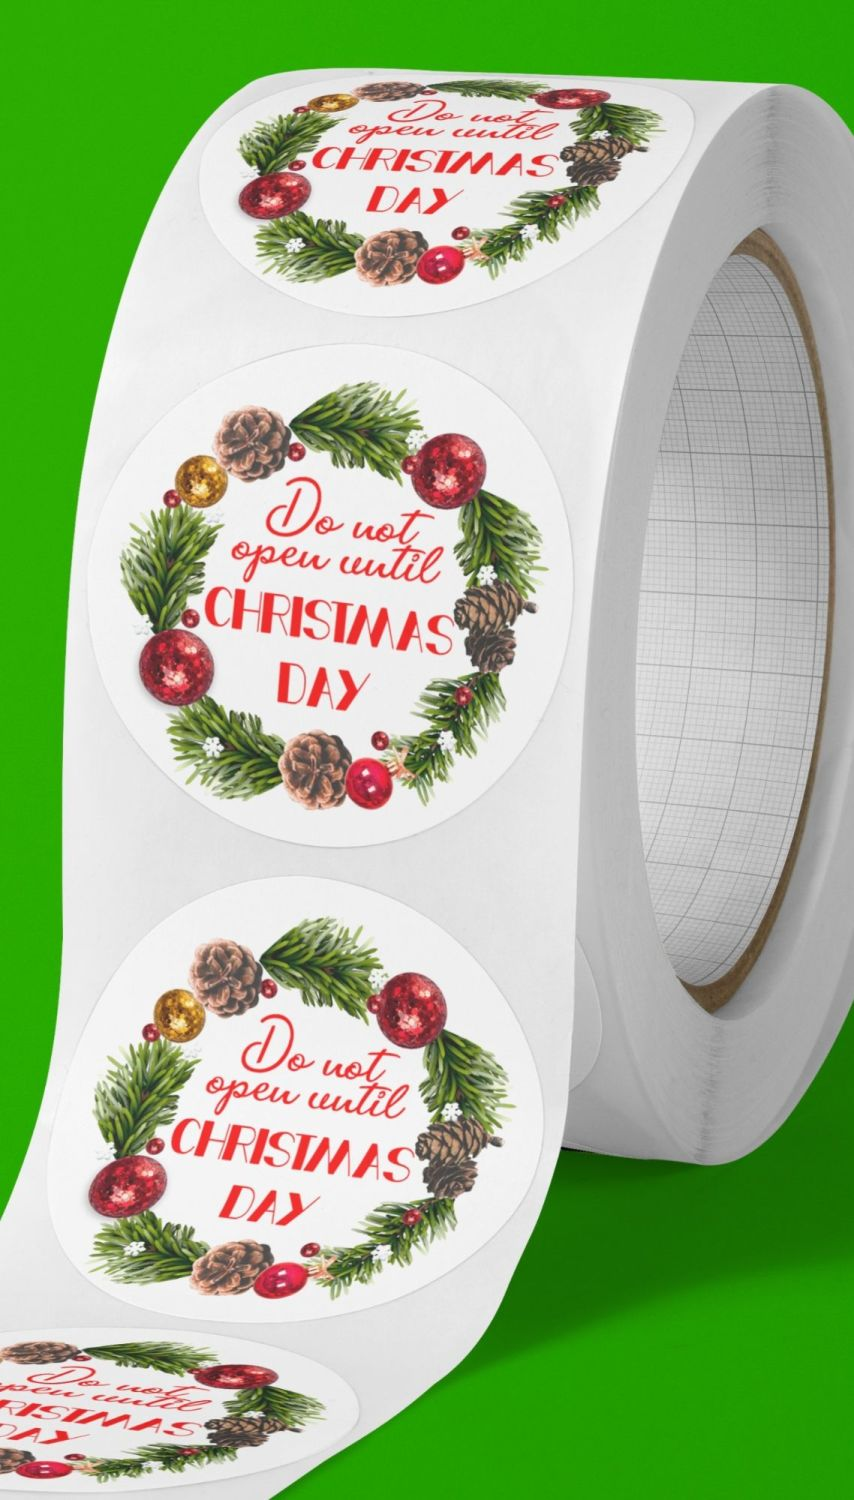 Do not open until Christmas round stickers. Wreath frame